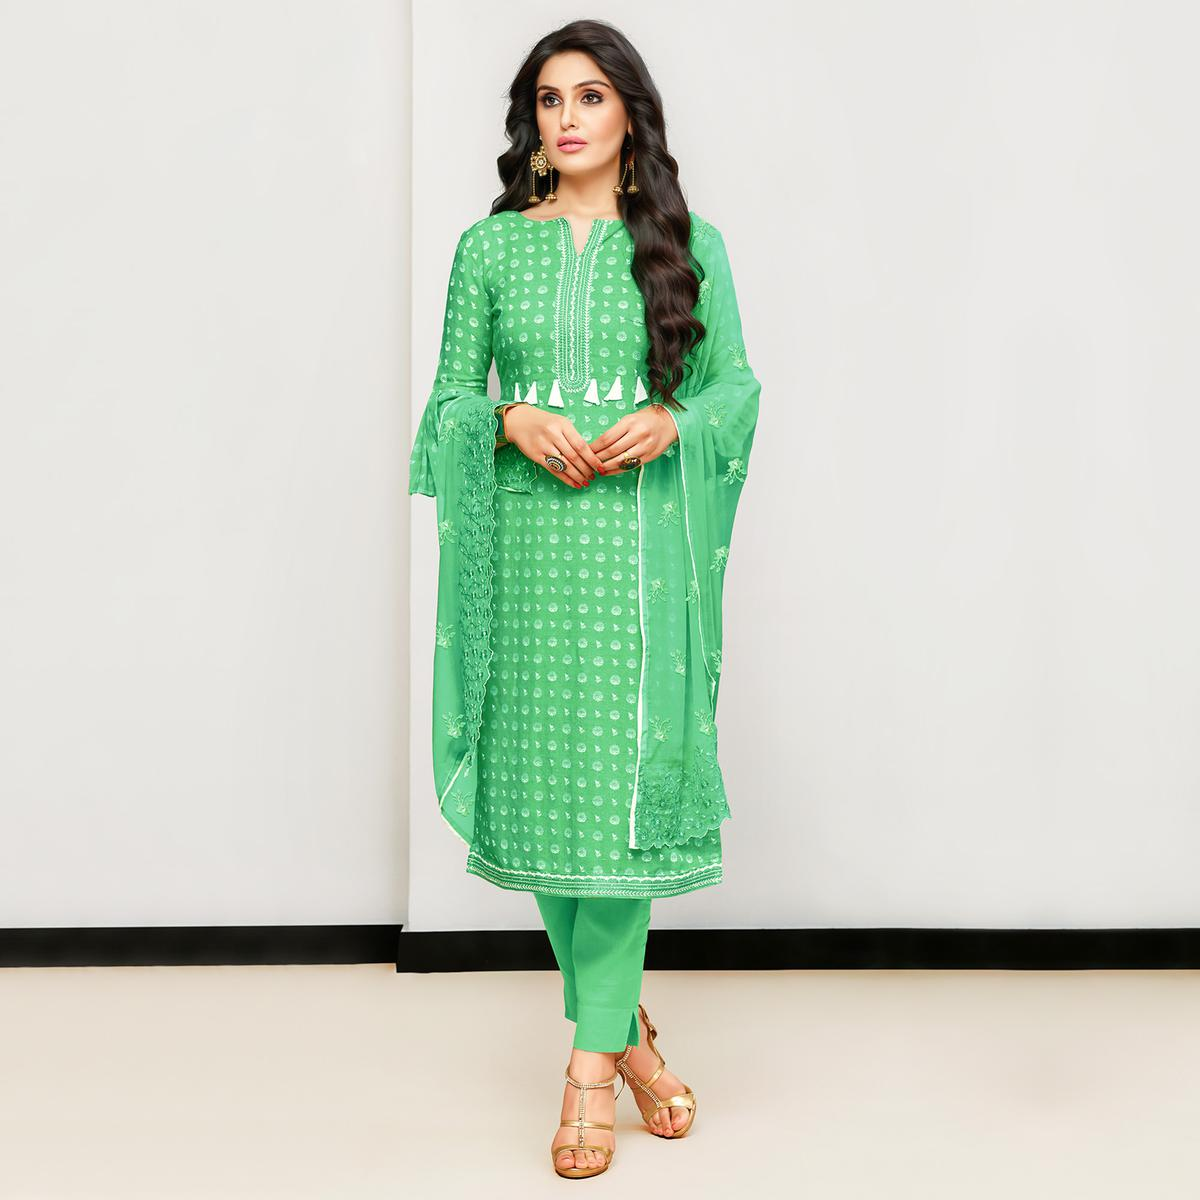 Majesty Green Colored Casual Printed Cotton Satin Suit